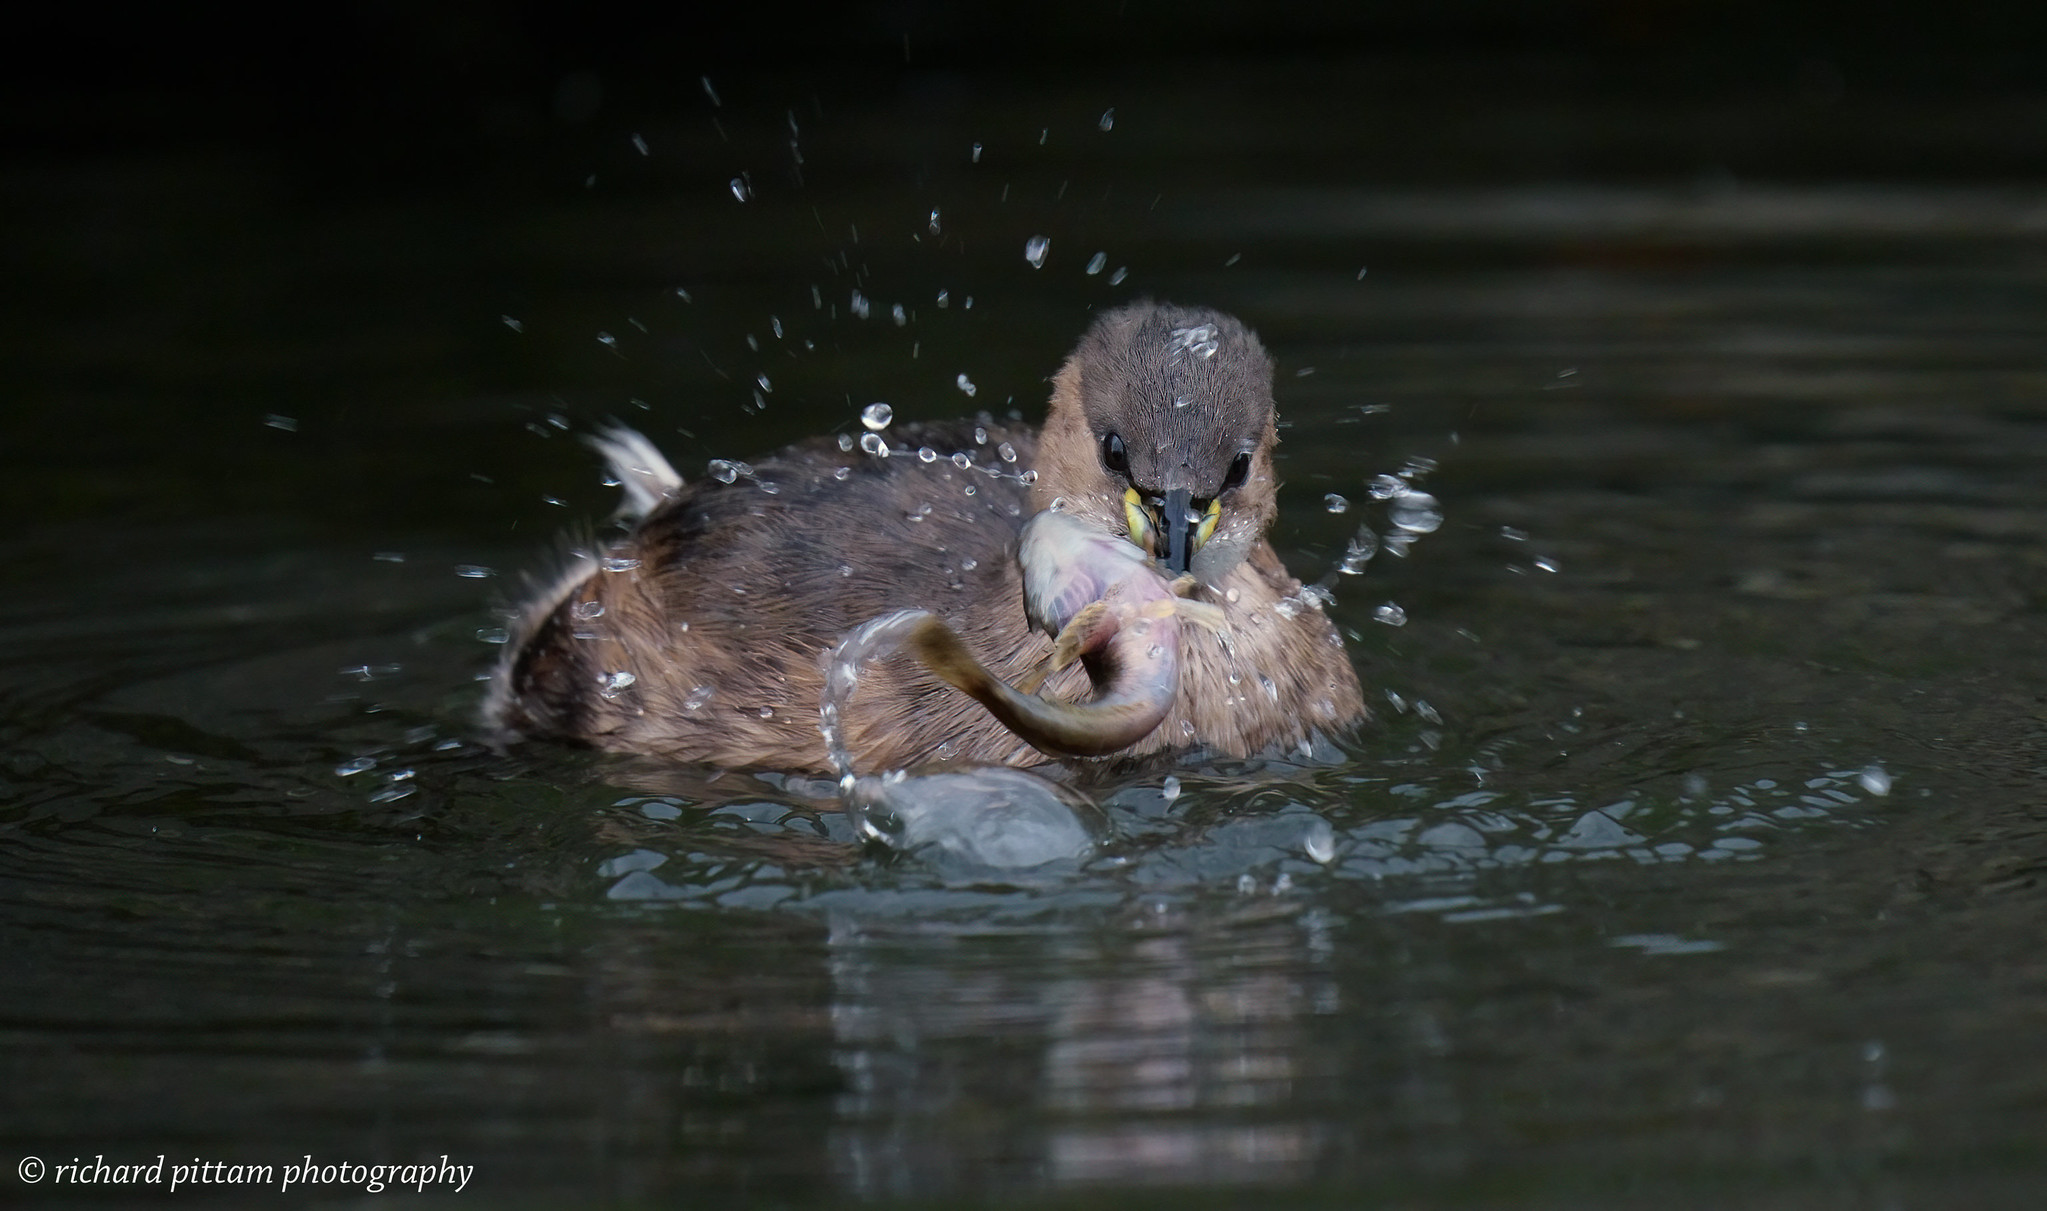 Little Grebe [ Dabchick] - low light testing with A7R4 and 200-600mm